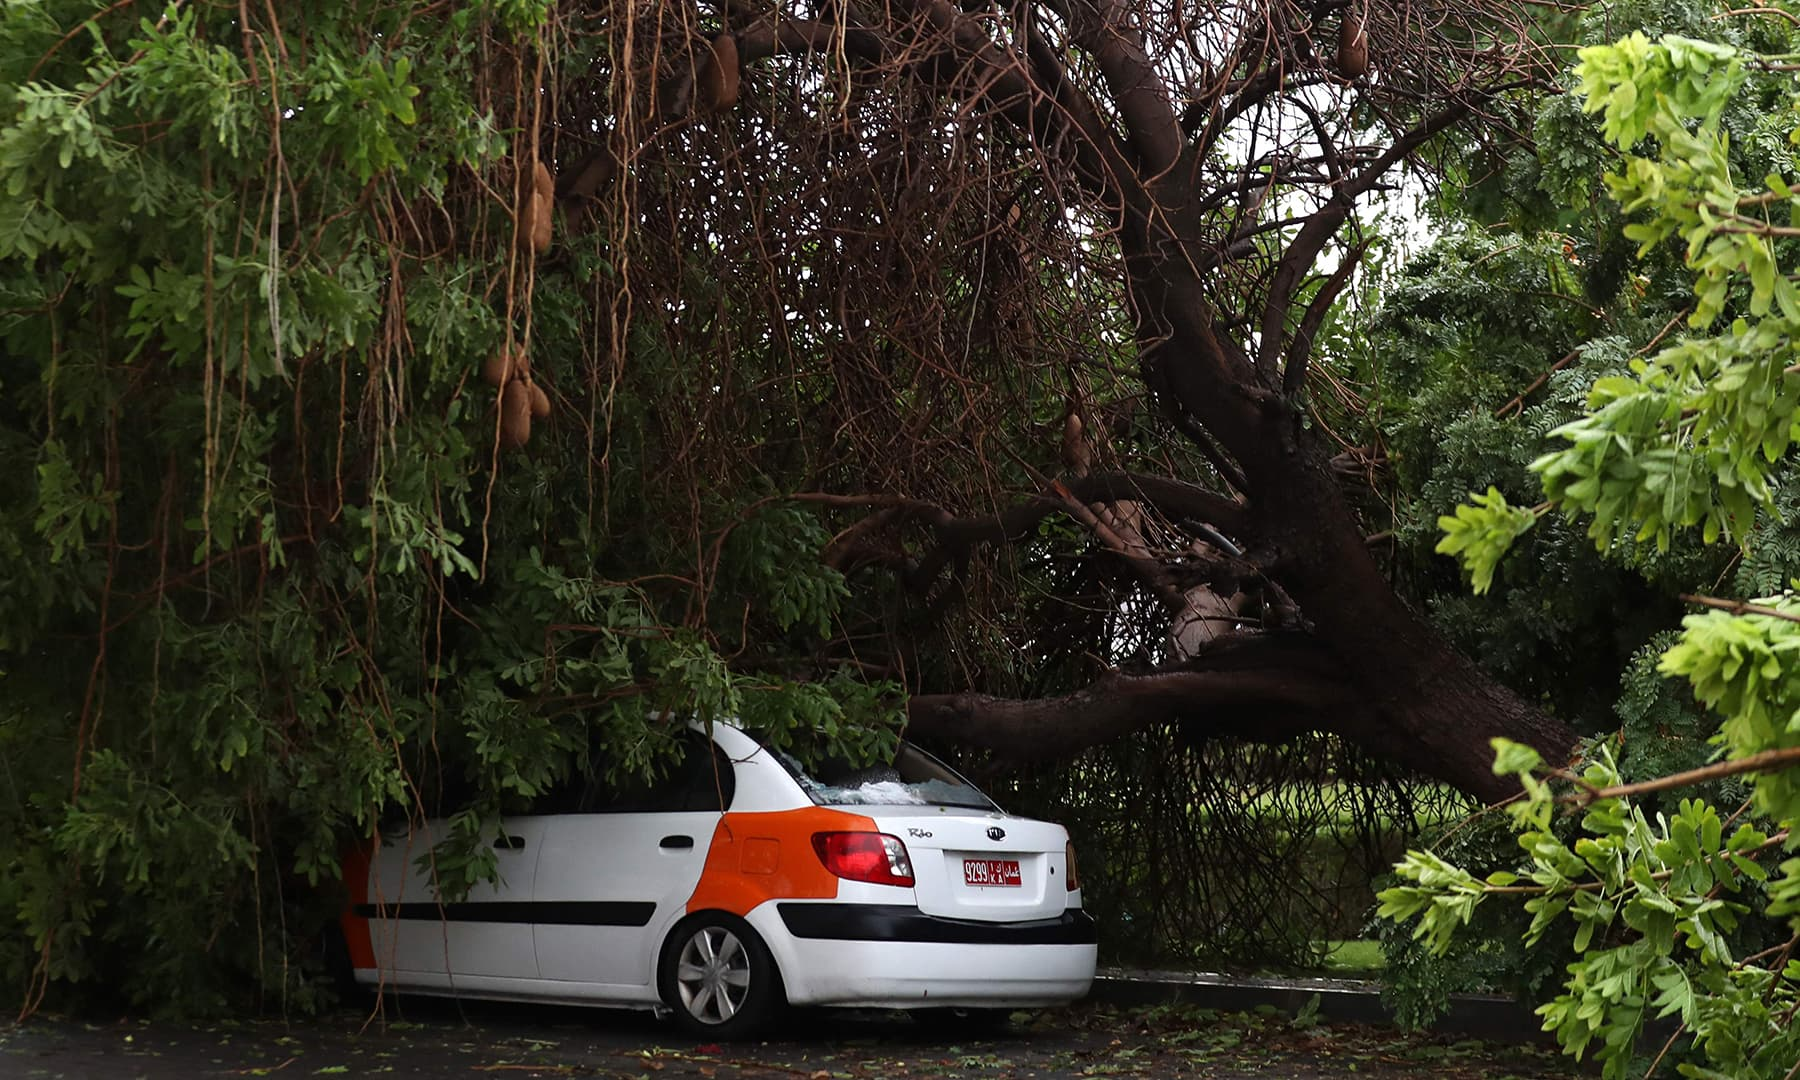 A vehicle is seen crushed by a tree amid Cyclone Shaheen in Oman's capital Muscat on October 3. — AFP